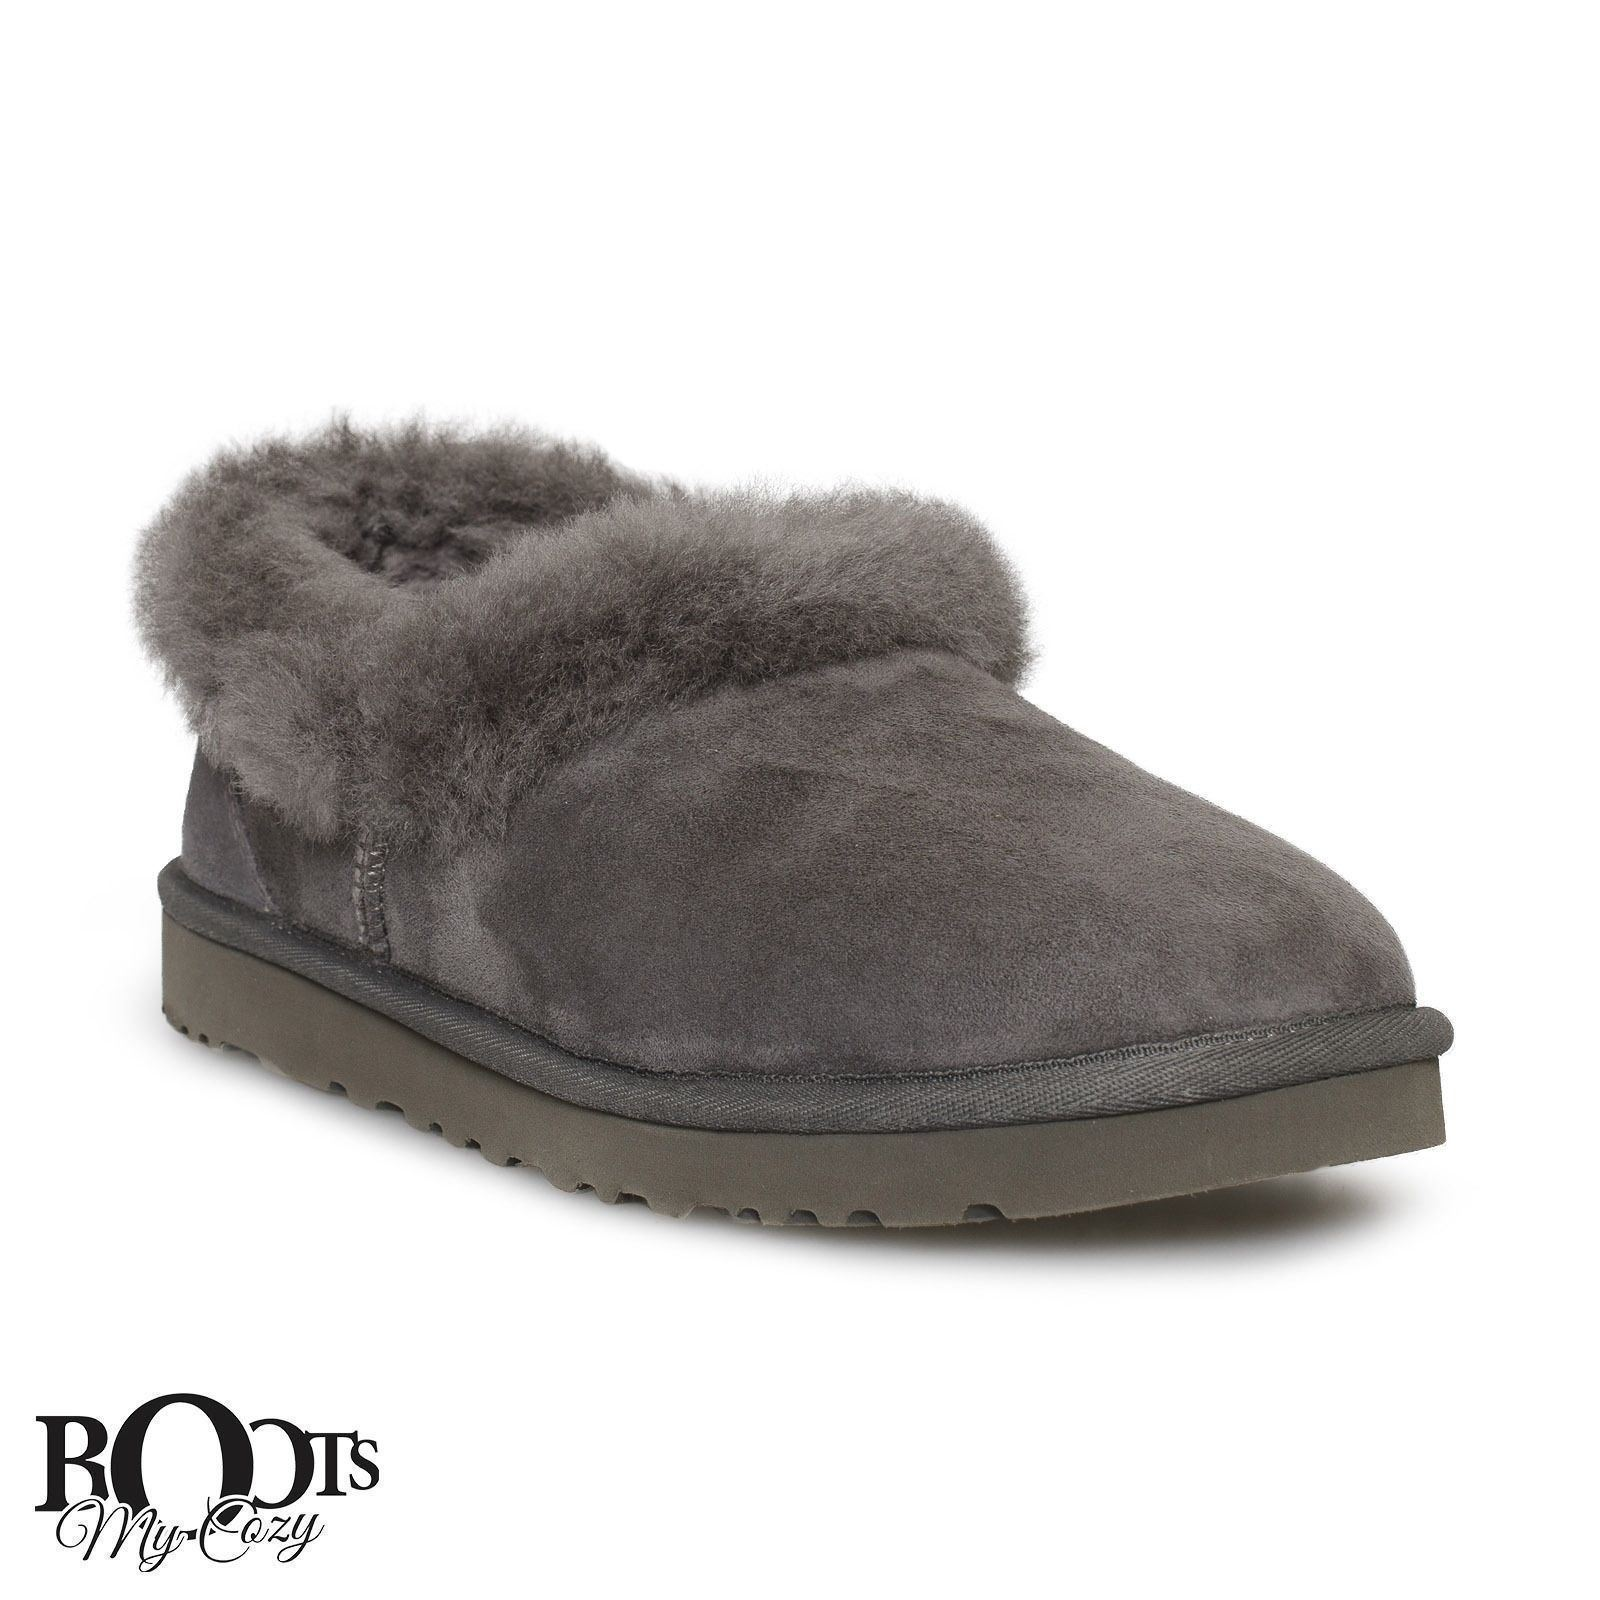 cddd3c9f1f0 Ugg Nita Grey Suede Sheepskin Women's and 50 similar items